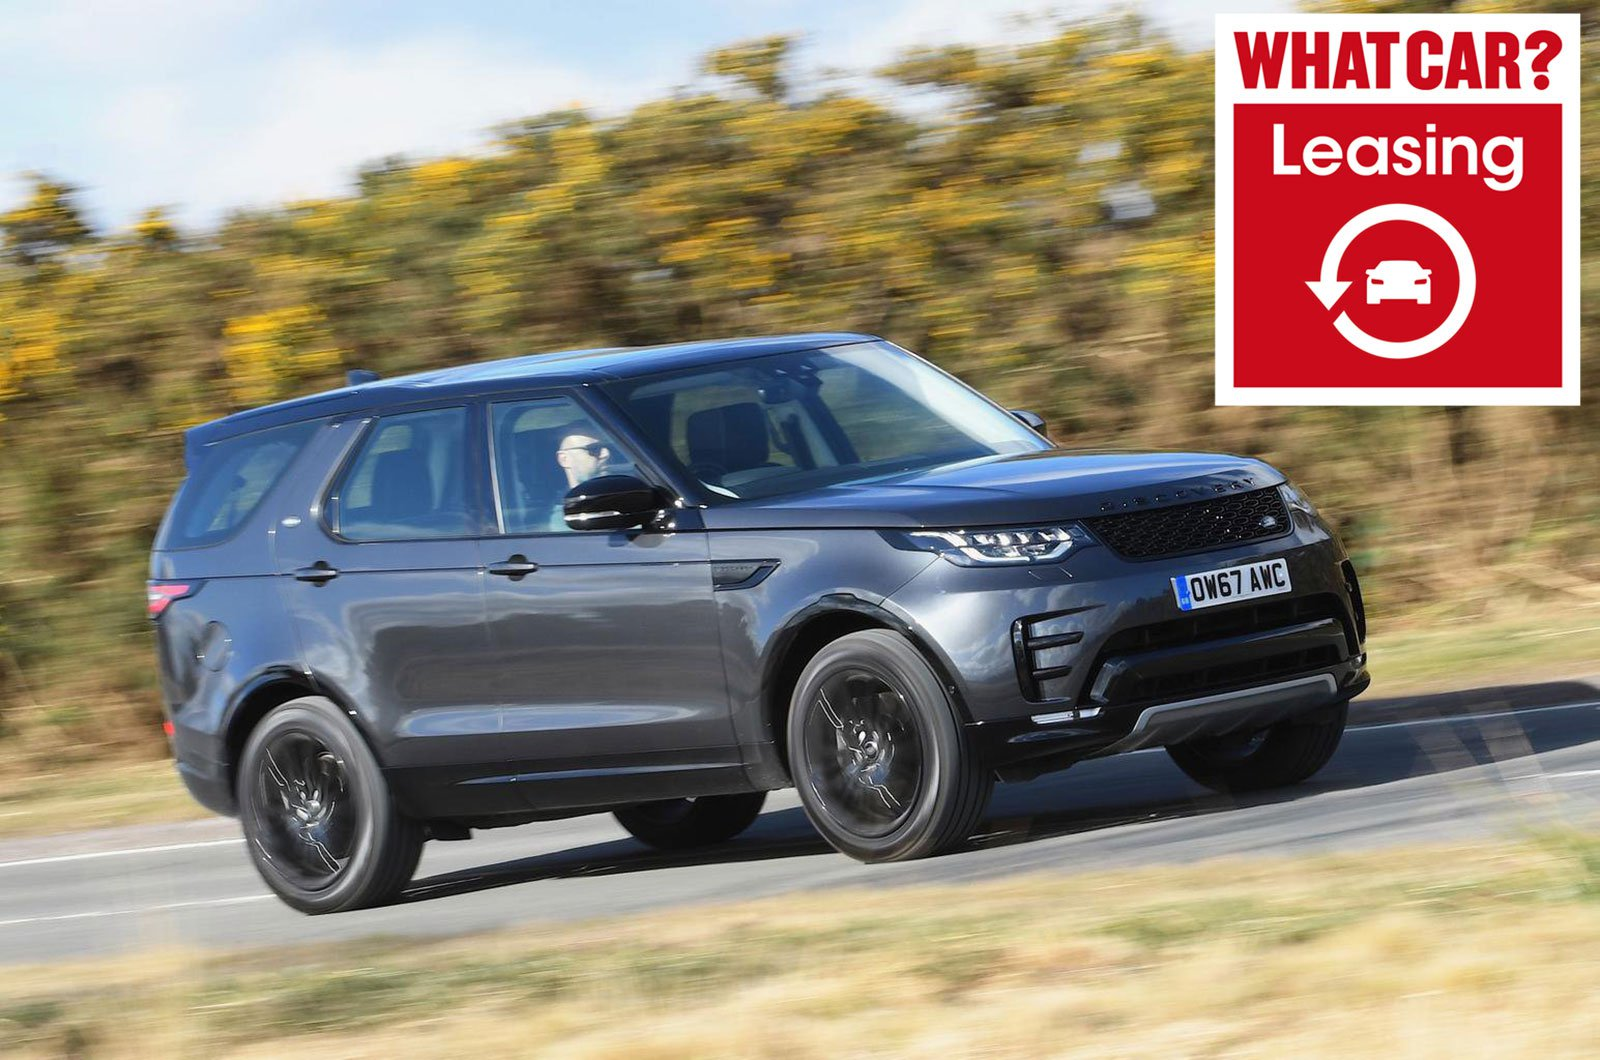 Land Rover Discovery with What Car? Leasing logo